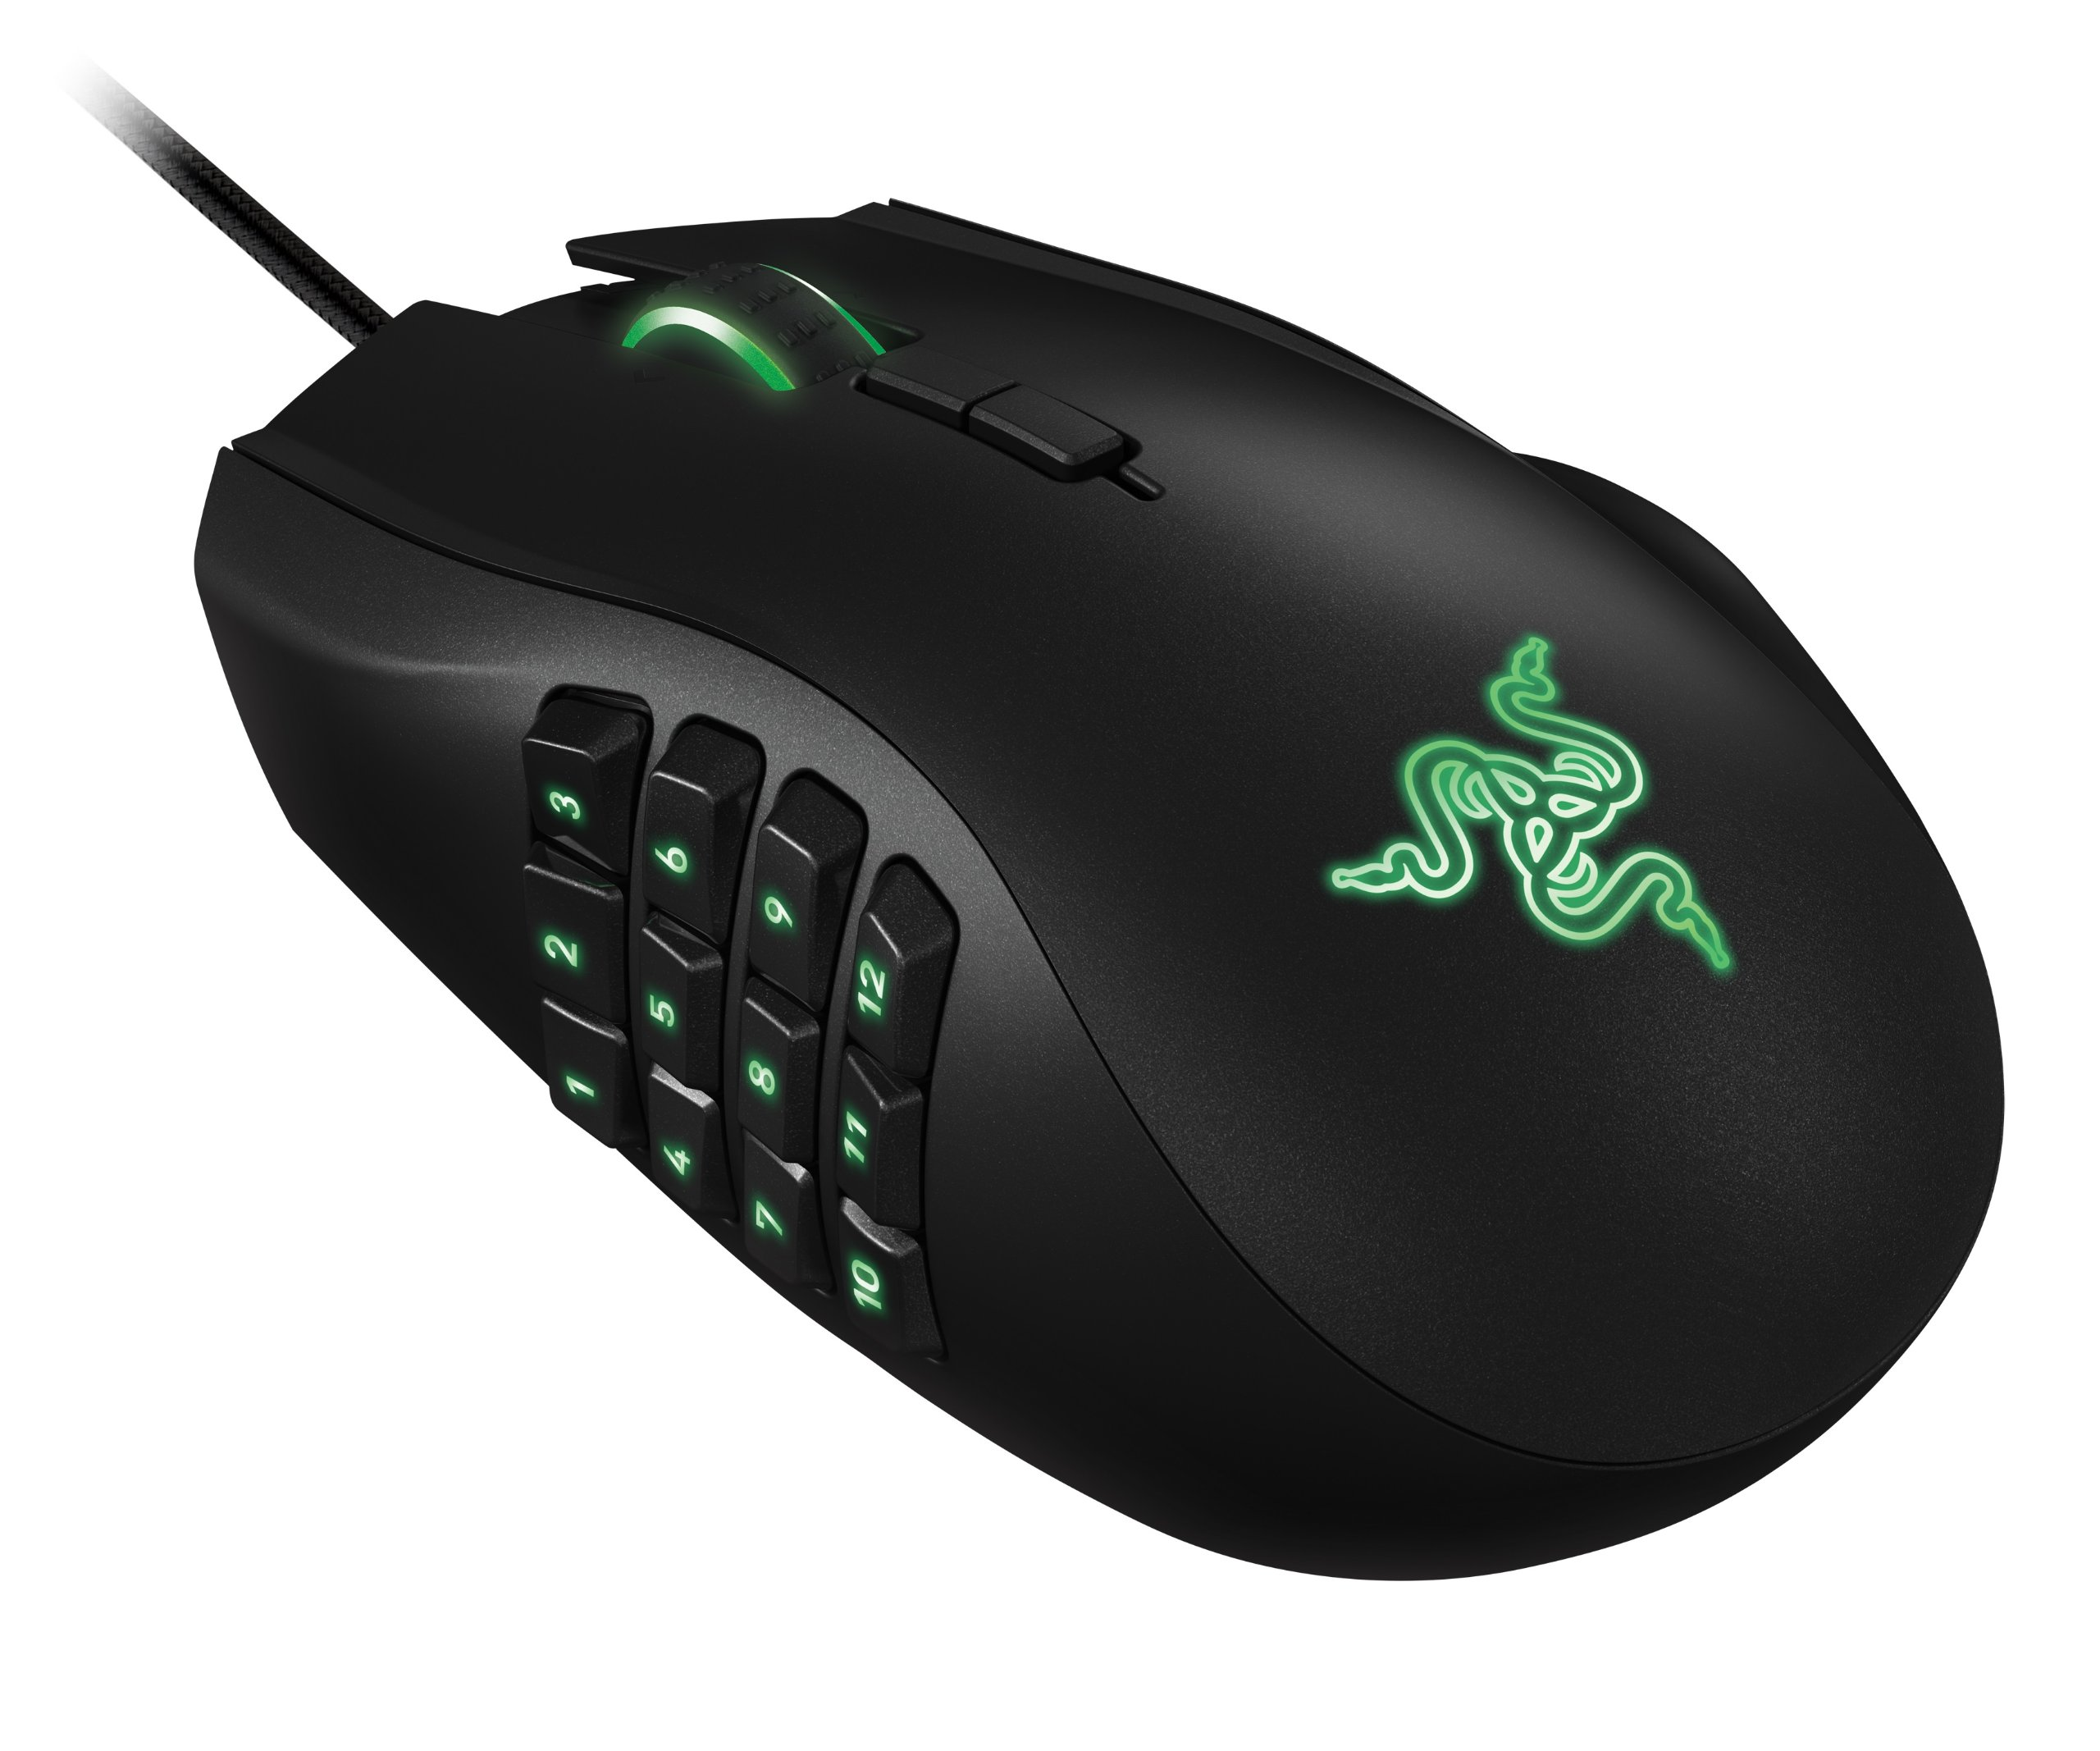 Razer Naga 2014 Ergonomic MMO Gaming Mouse - Black